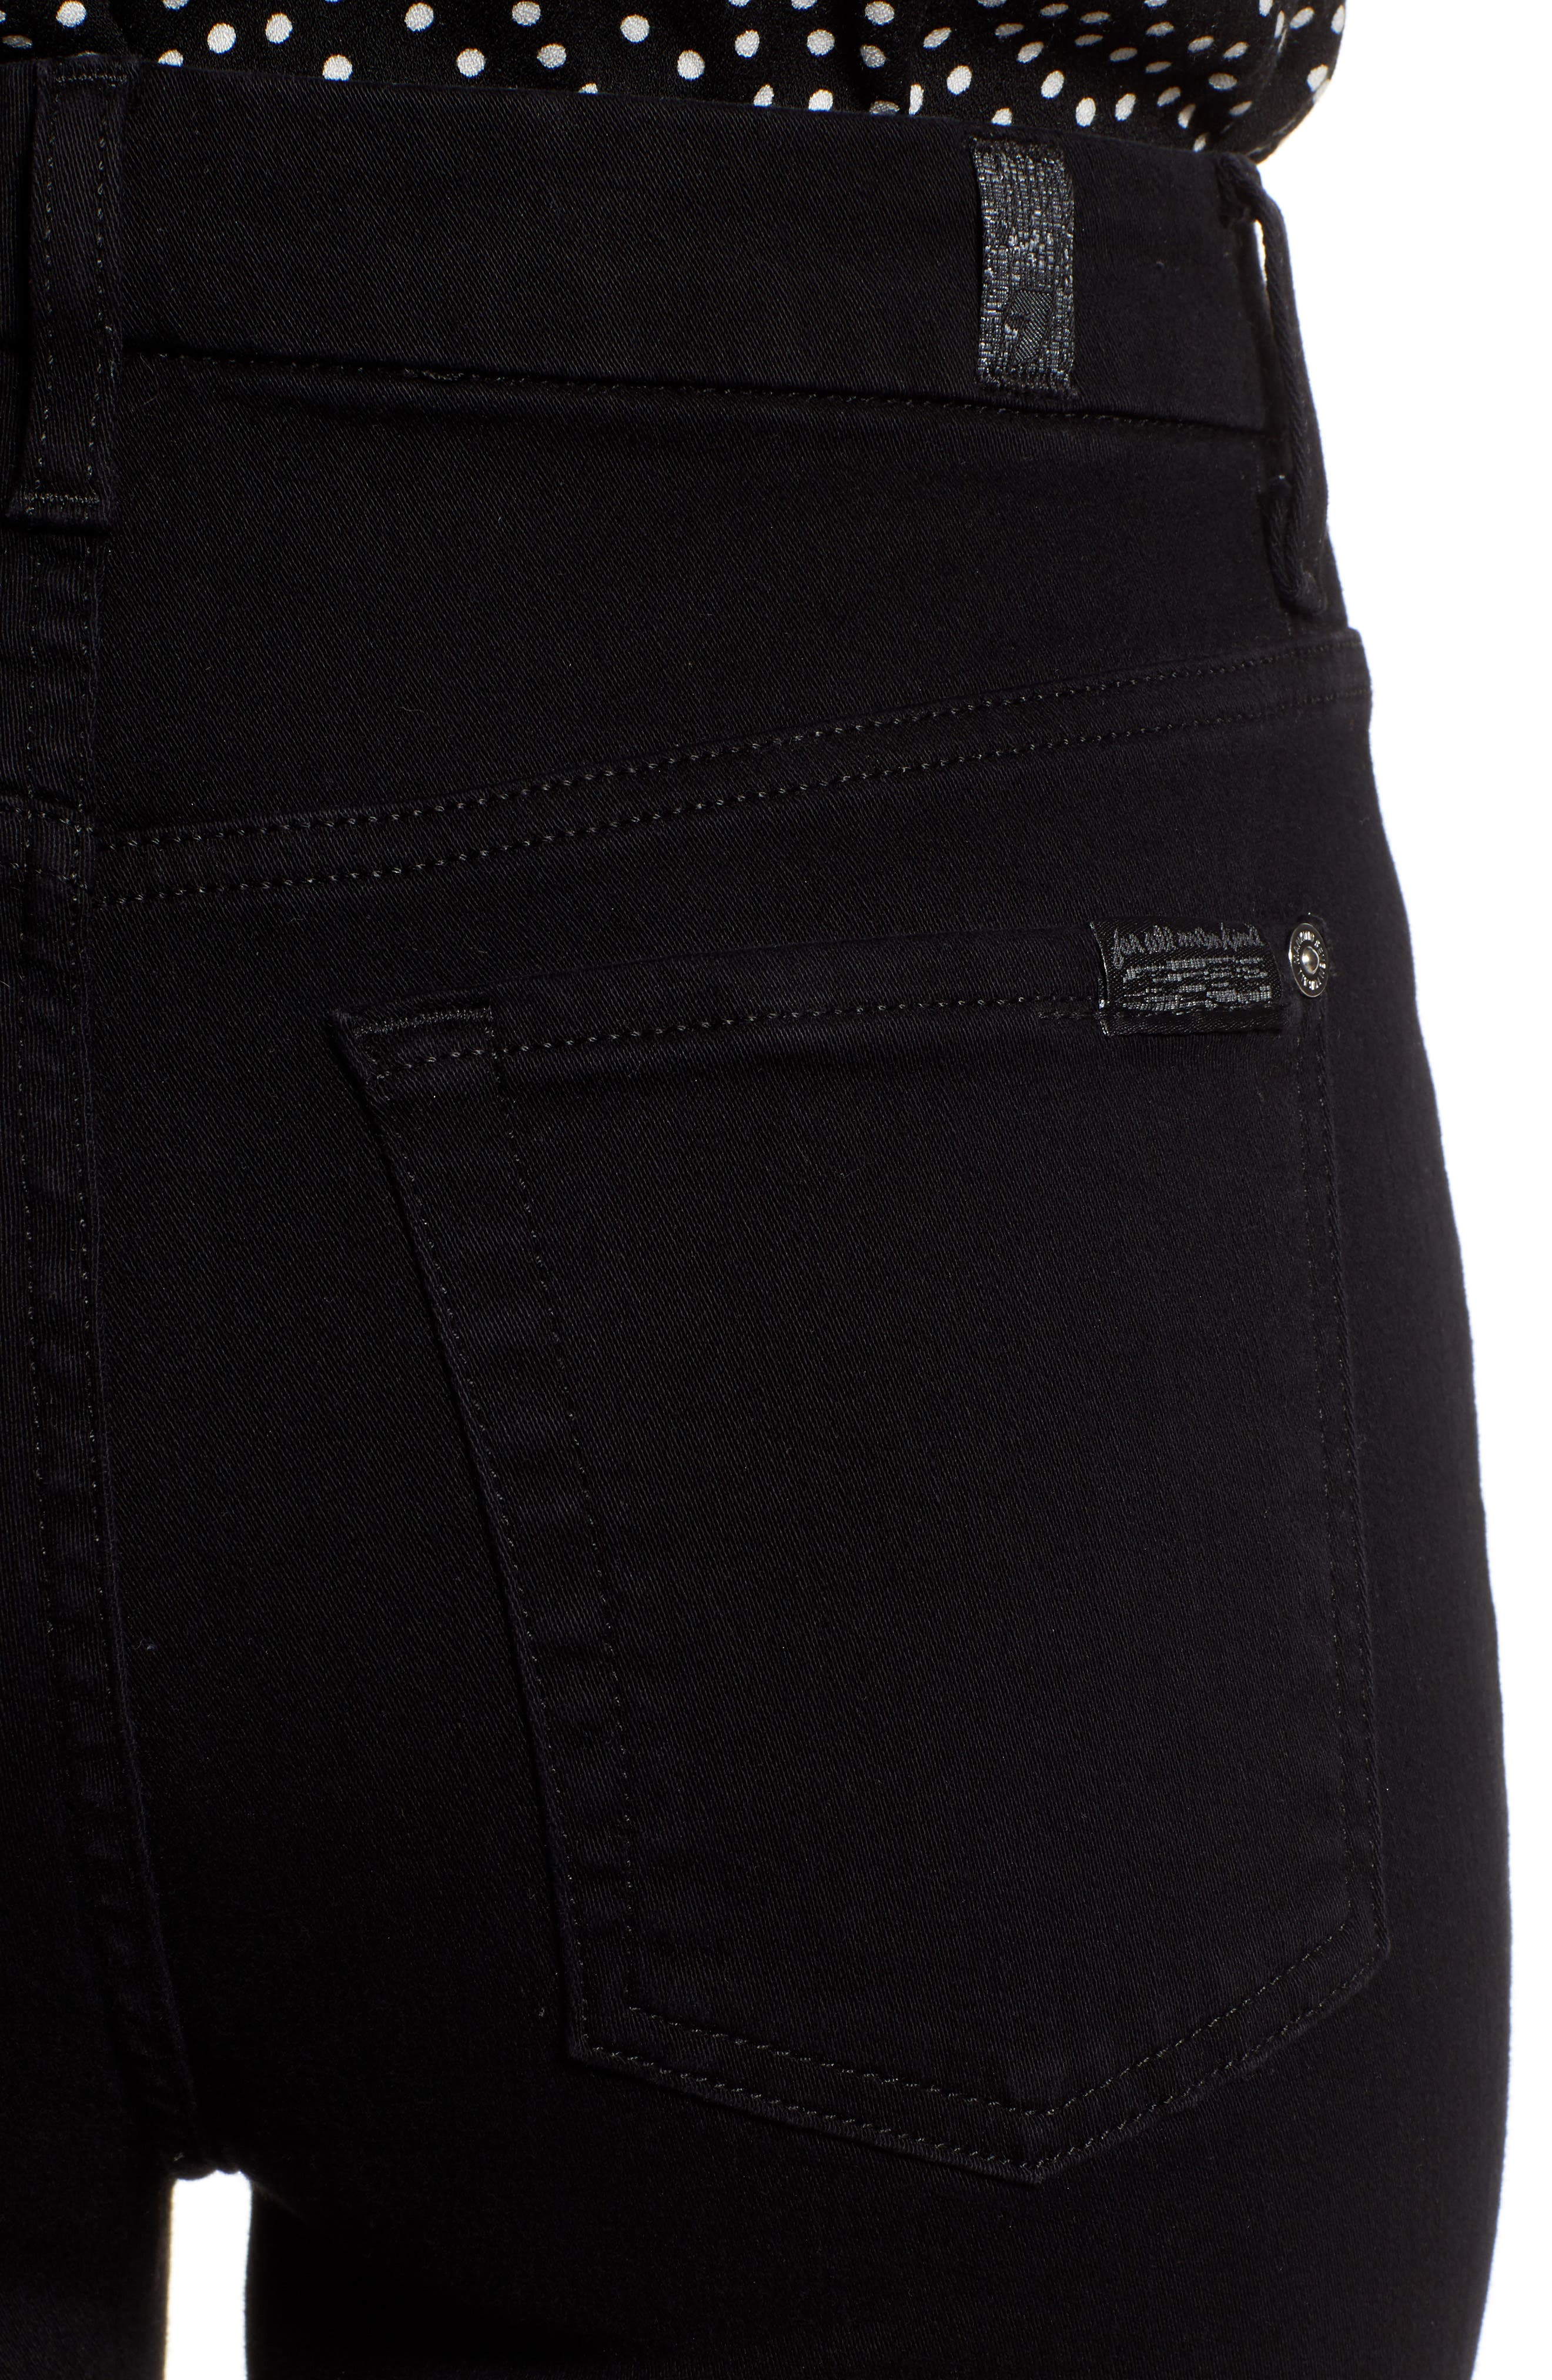 7 FOR ALL MANKIND<SUP>®</SUP>, Aubrey Super High Waist Ankle Skinny Jeans, Alternate thumbnail 5, color, PITCH BLACK